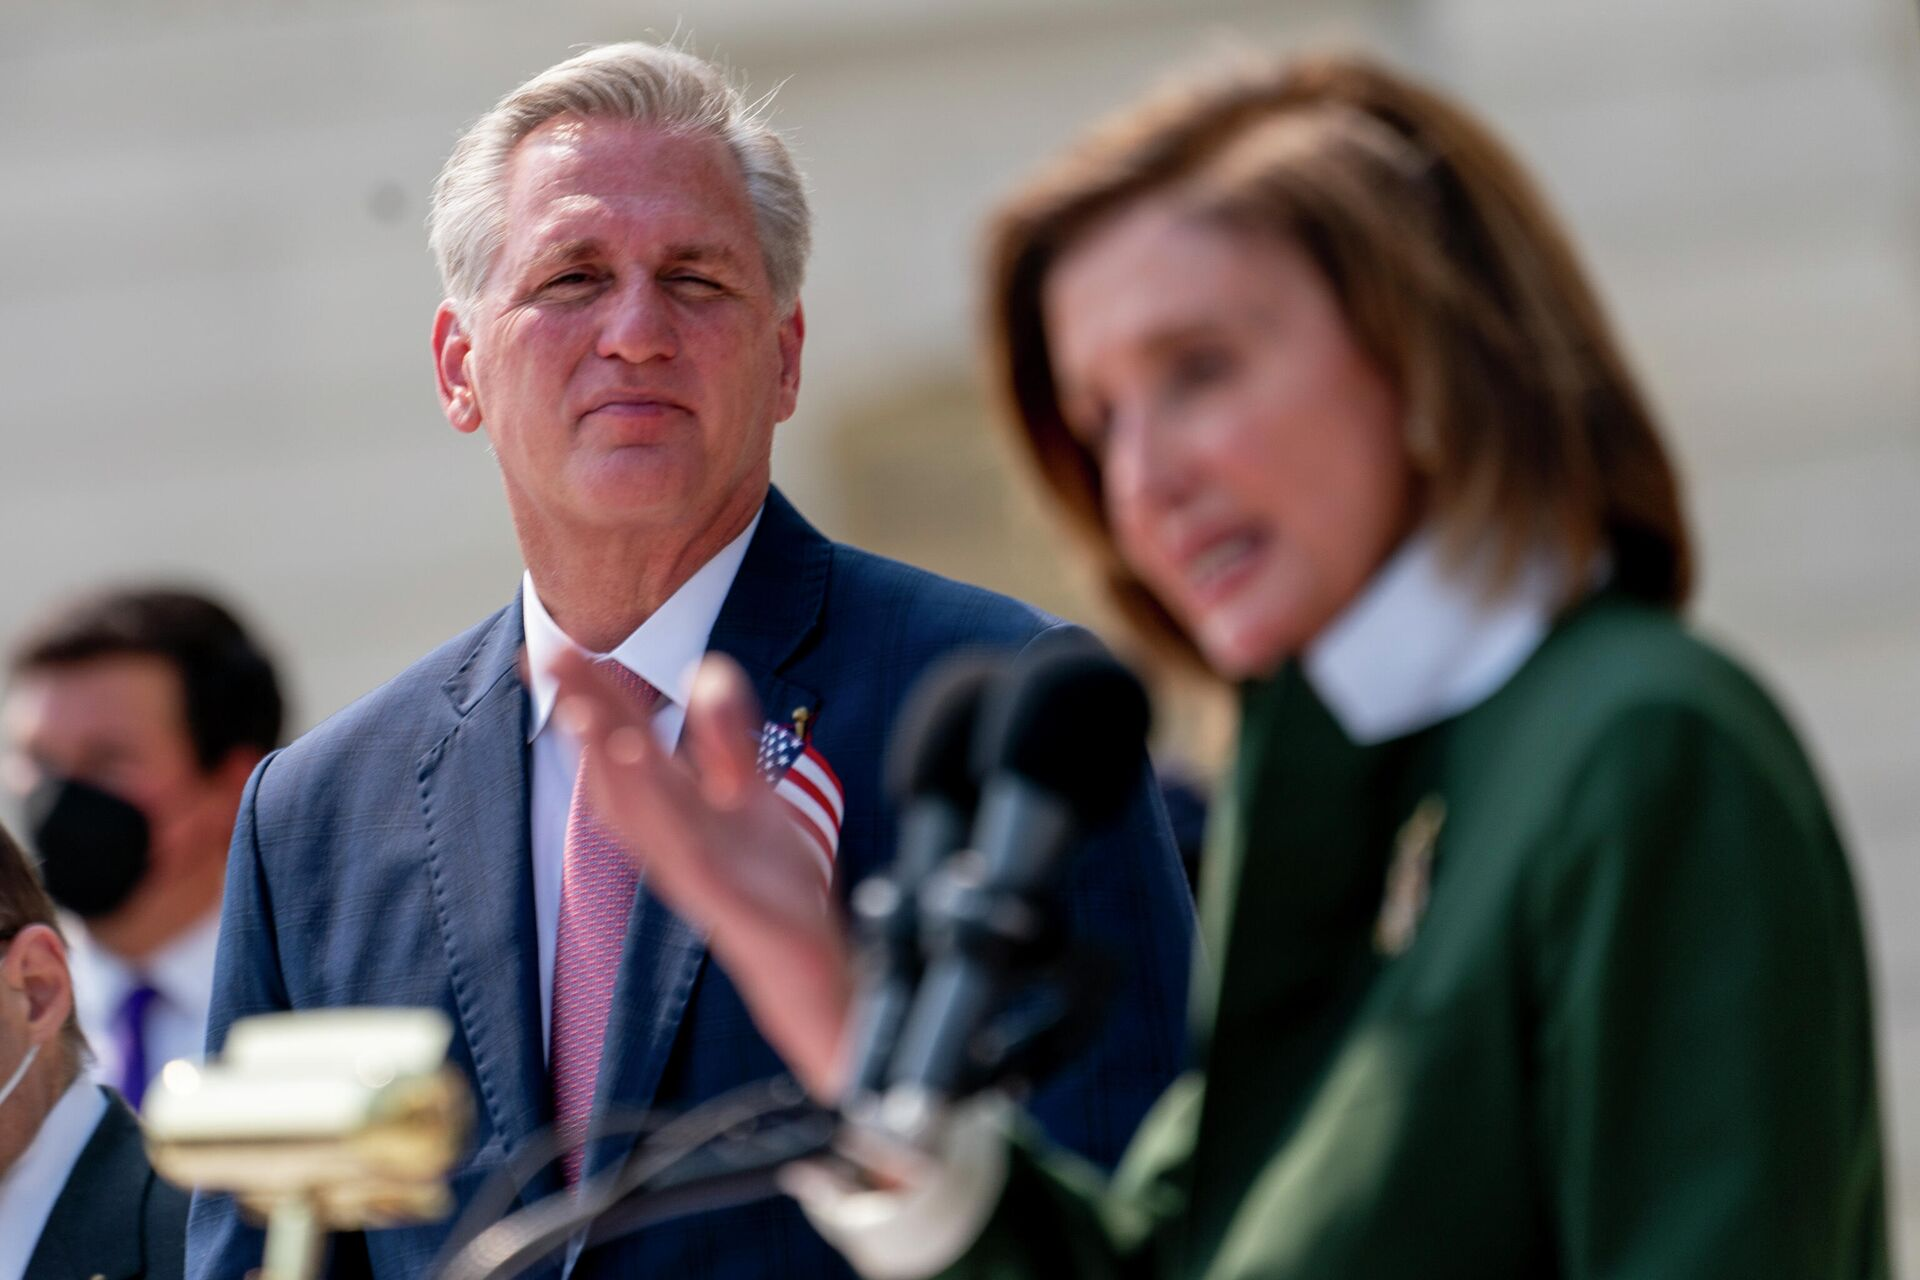 House Speaker Nancy Pelosi of Calif., right, accompanied by House Minority Leader Kevin McCarthy of Calif., left, speaks during a Congressional Remembrance Ceremony marking the 20th anniversary of the Sept. 11, 2001, terrorist attacks, on Capitol Hill in Washington, Monday, Sept. 13, 2021. - Sputnik International, 1920, 13.10.2021